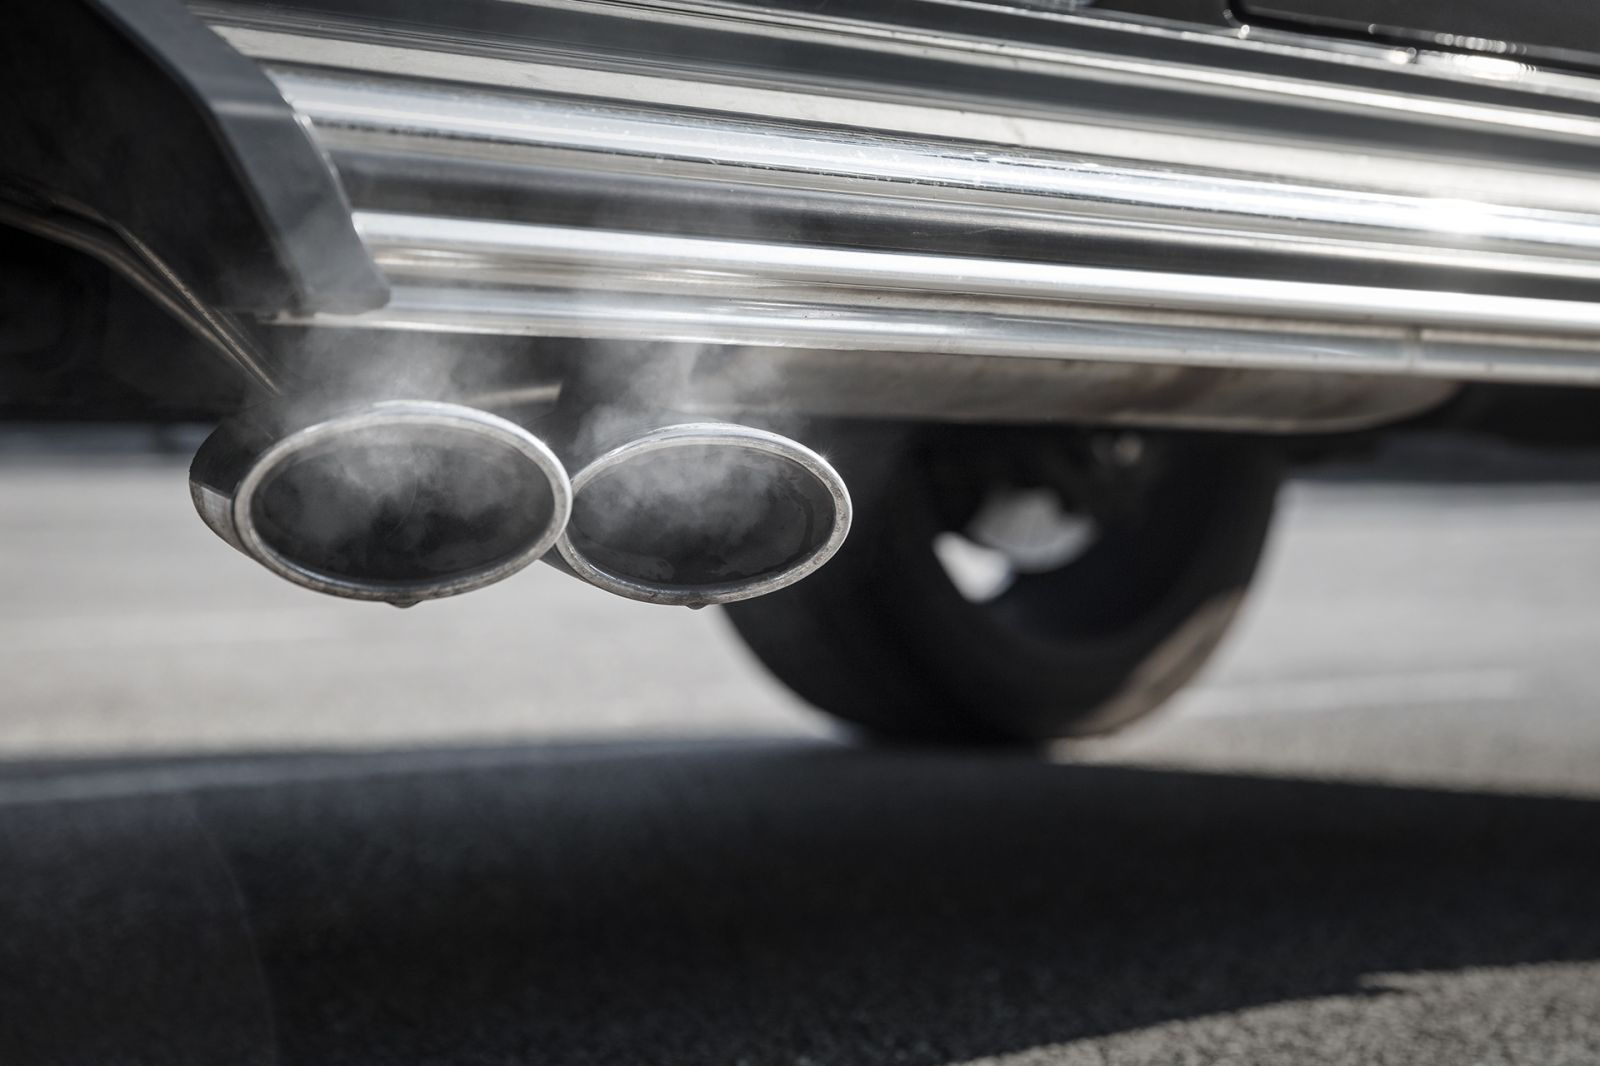 MERCEDES G CLASS CTC - TWIN EXHAUST SIDE PIPES (NON AMG MODELS)